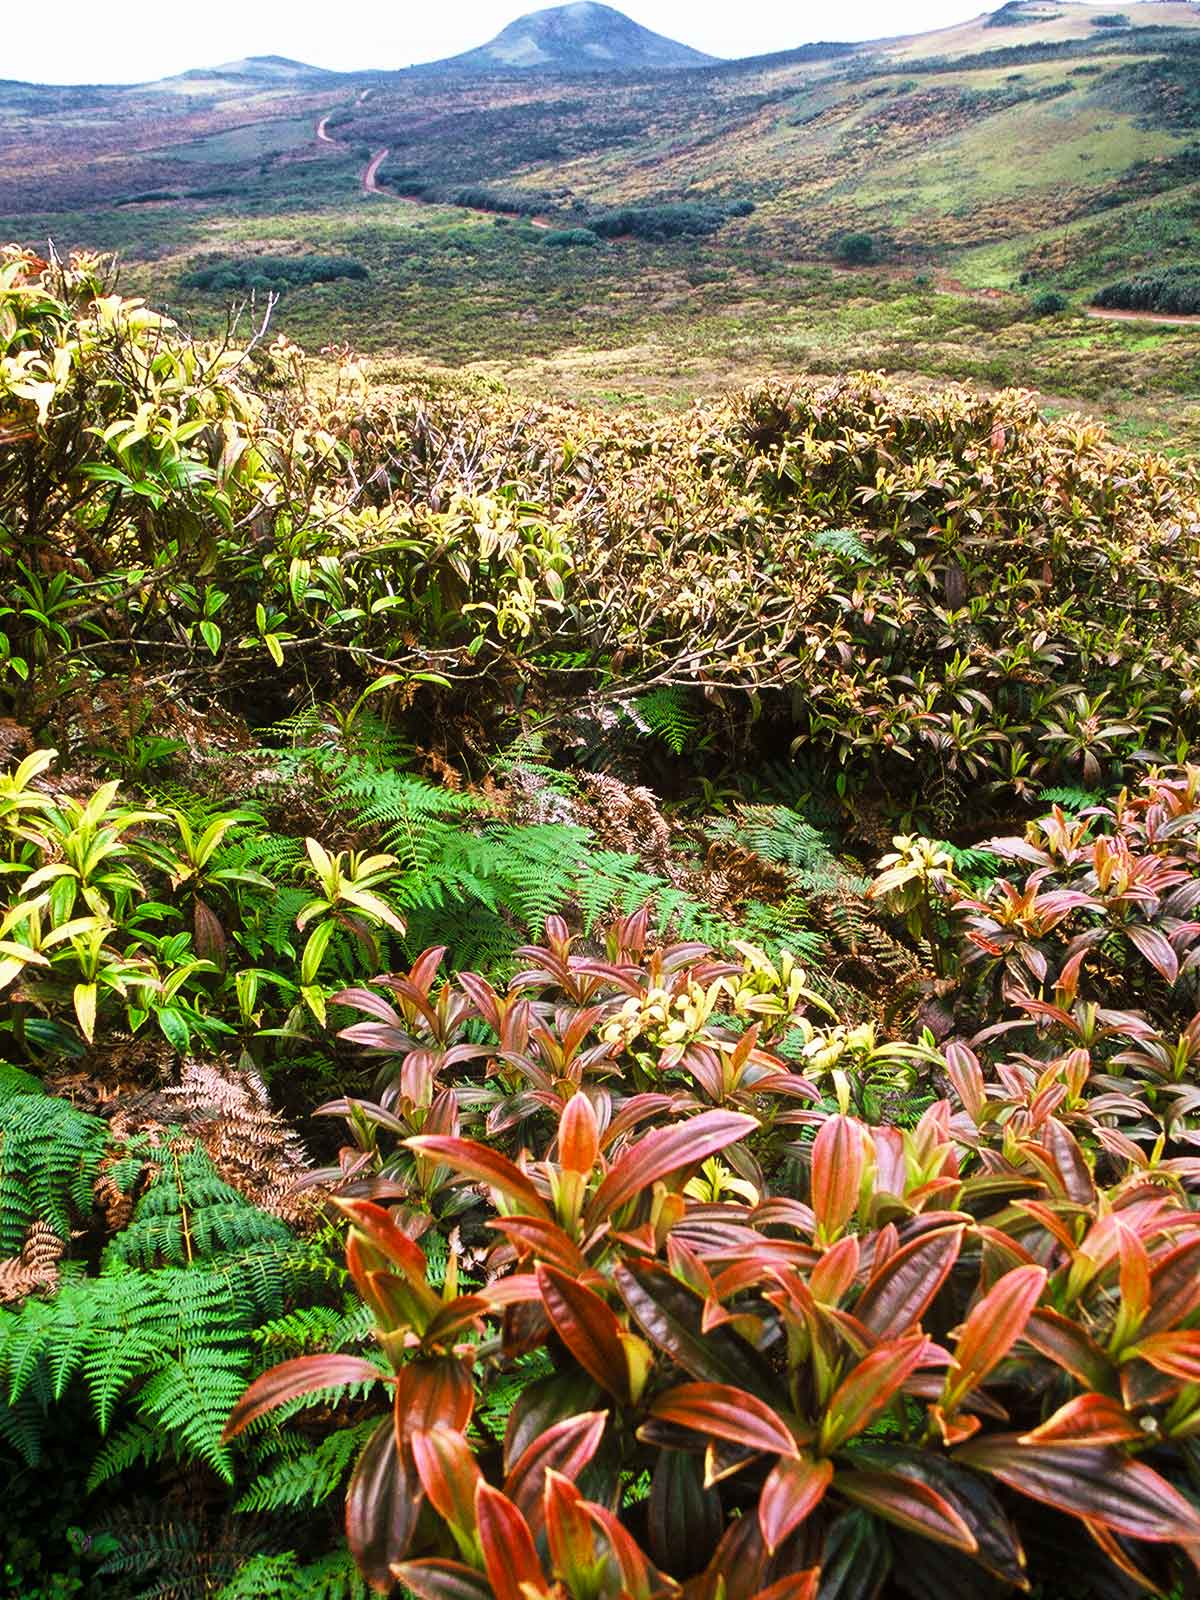 San Cristobal Landscape | Biodiversity | Galapagos Photo Journal | Steven Andrew Martin | Learning is an Adventure